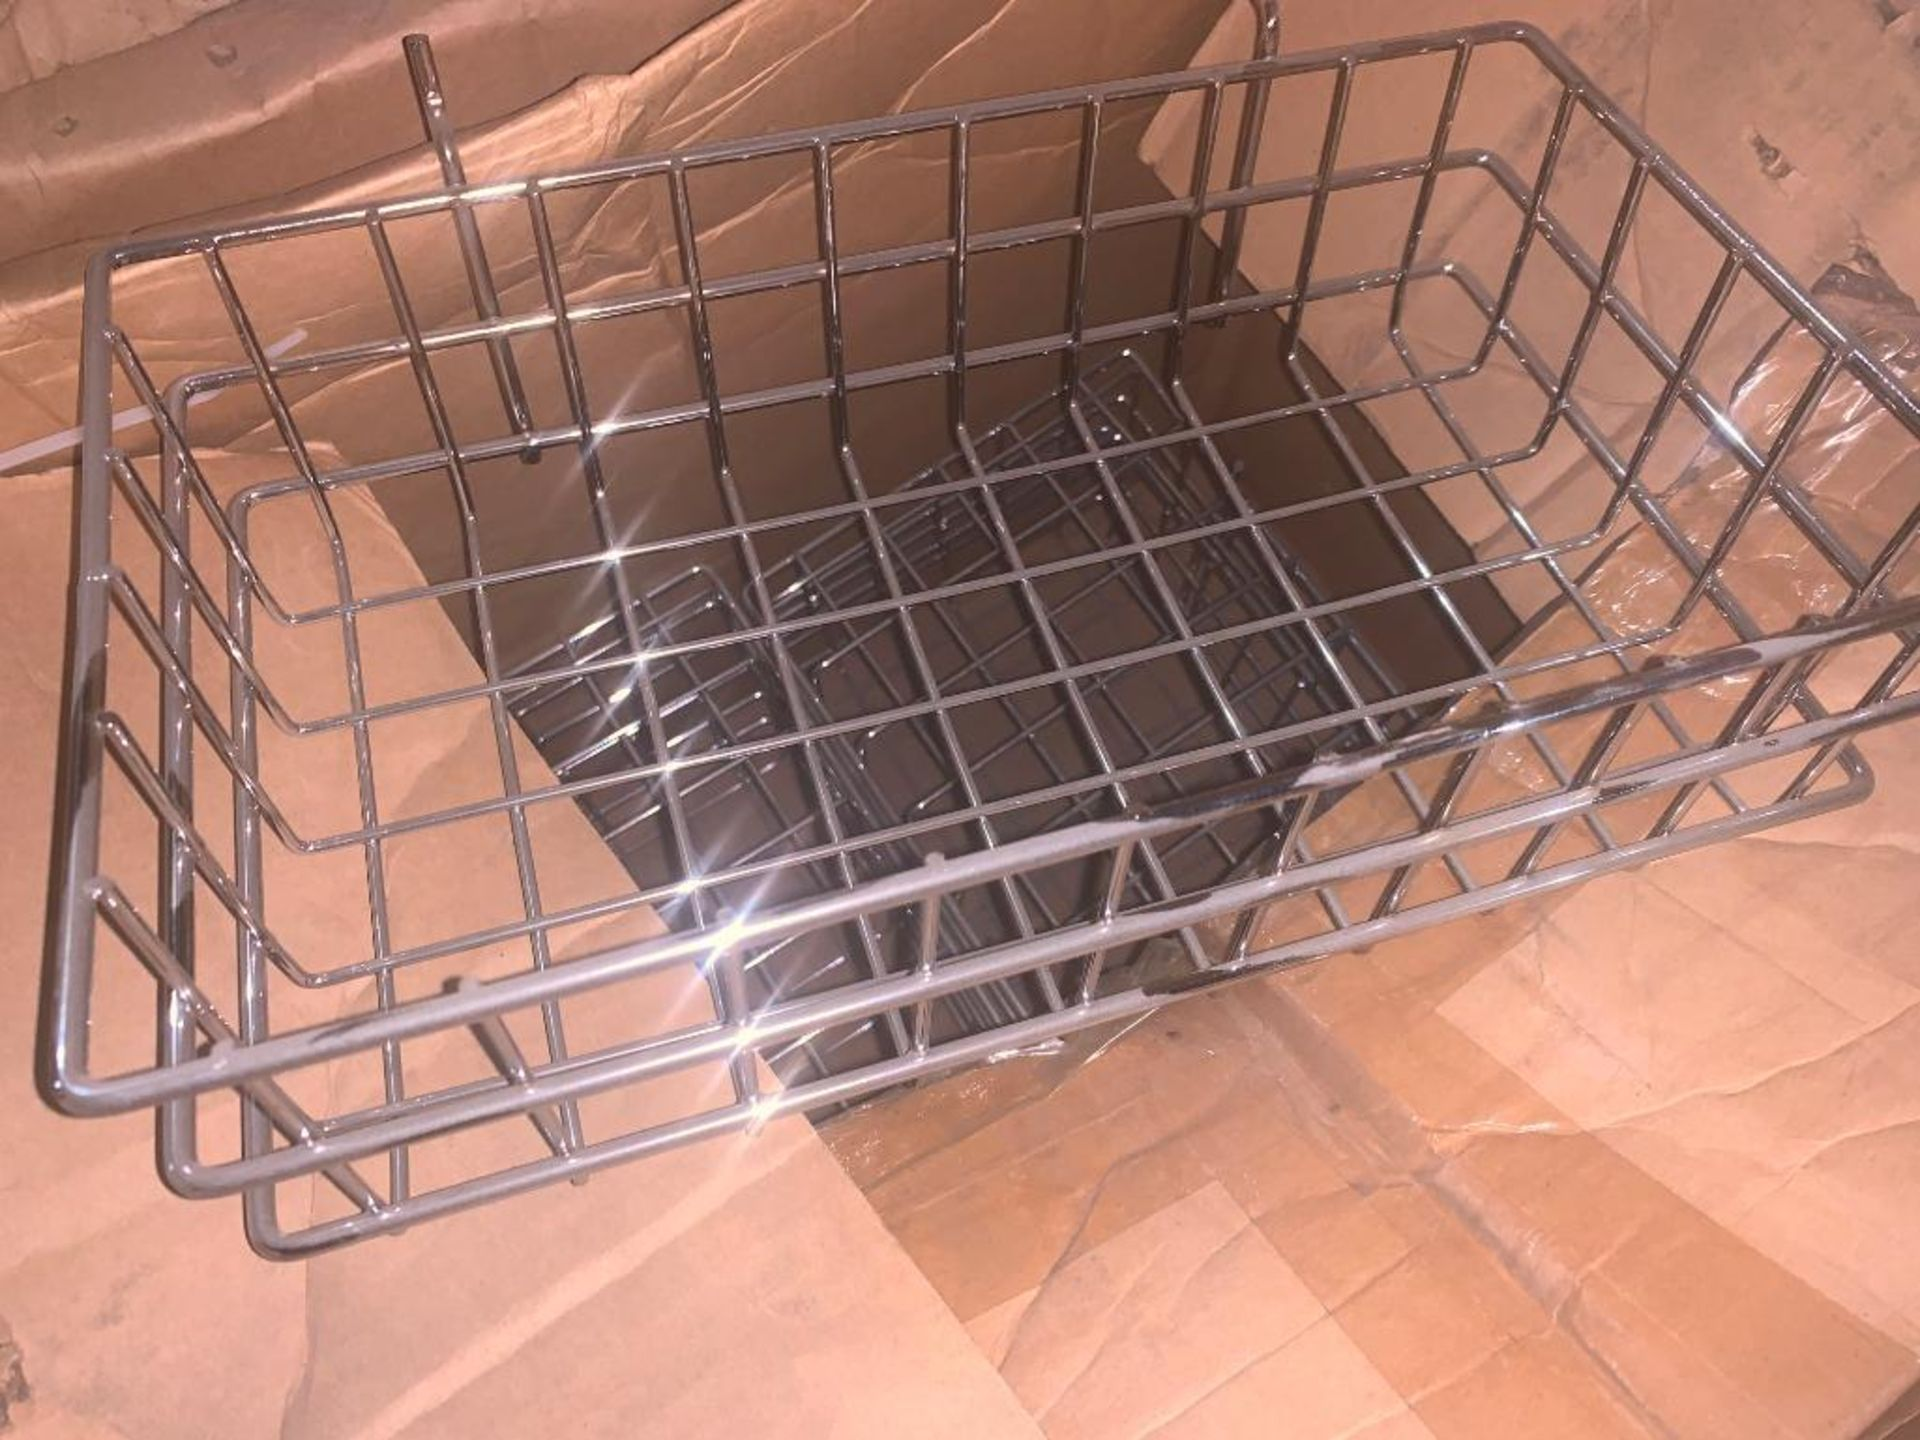 pallet of wire baskets and wire parts - Image 6 of 7